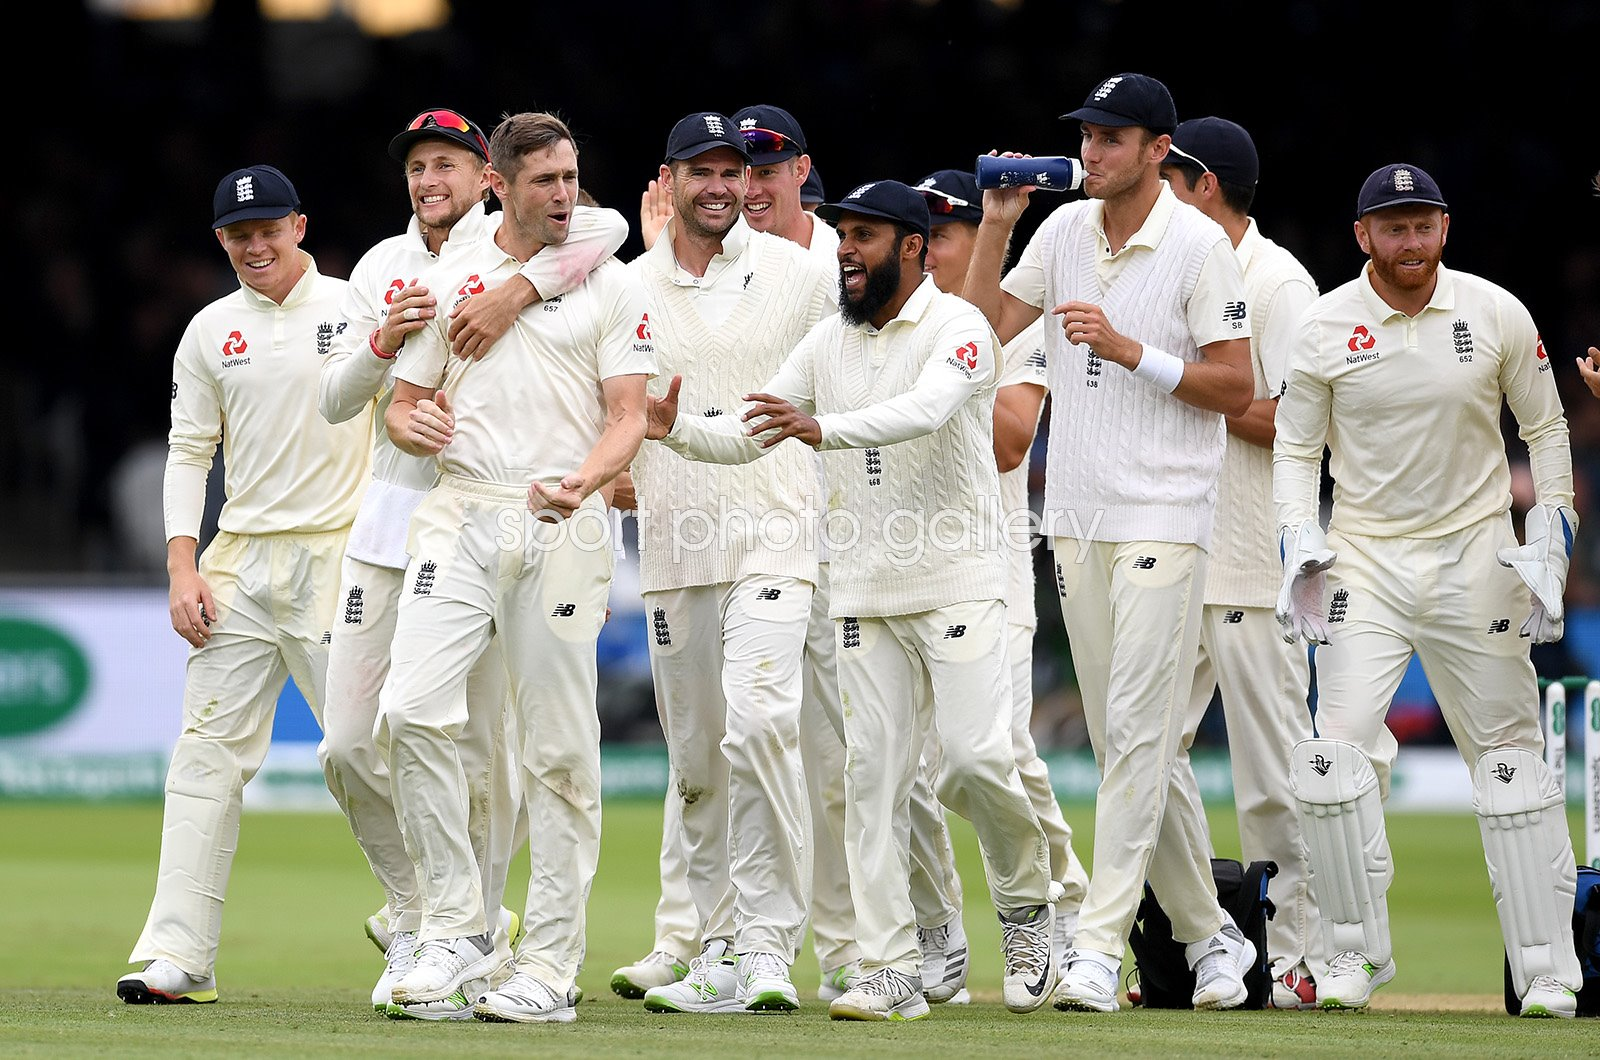 Chris Woakes England v India 2nd Test Lord's 2018